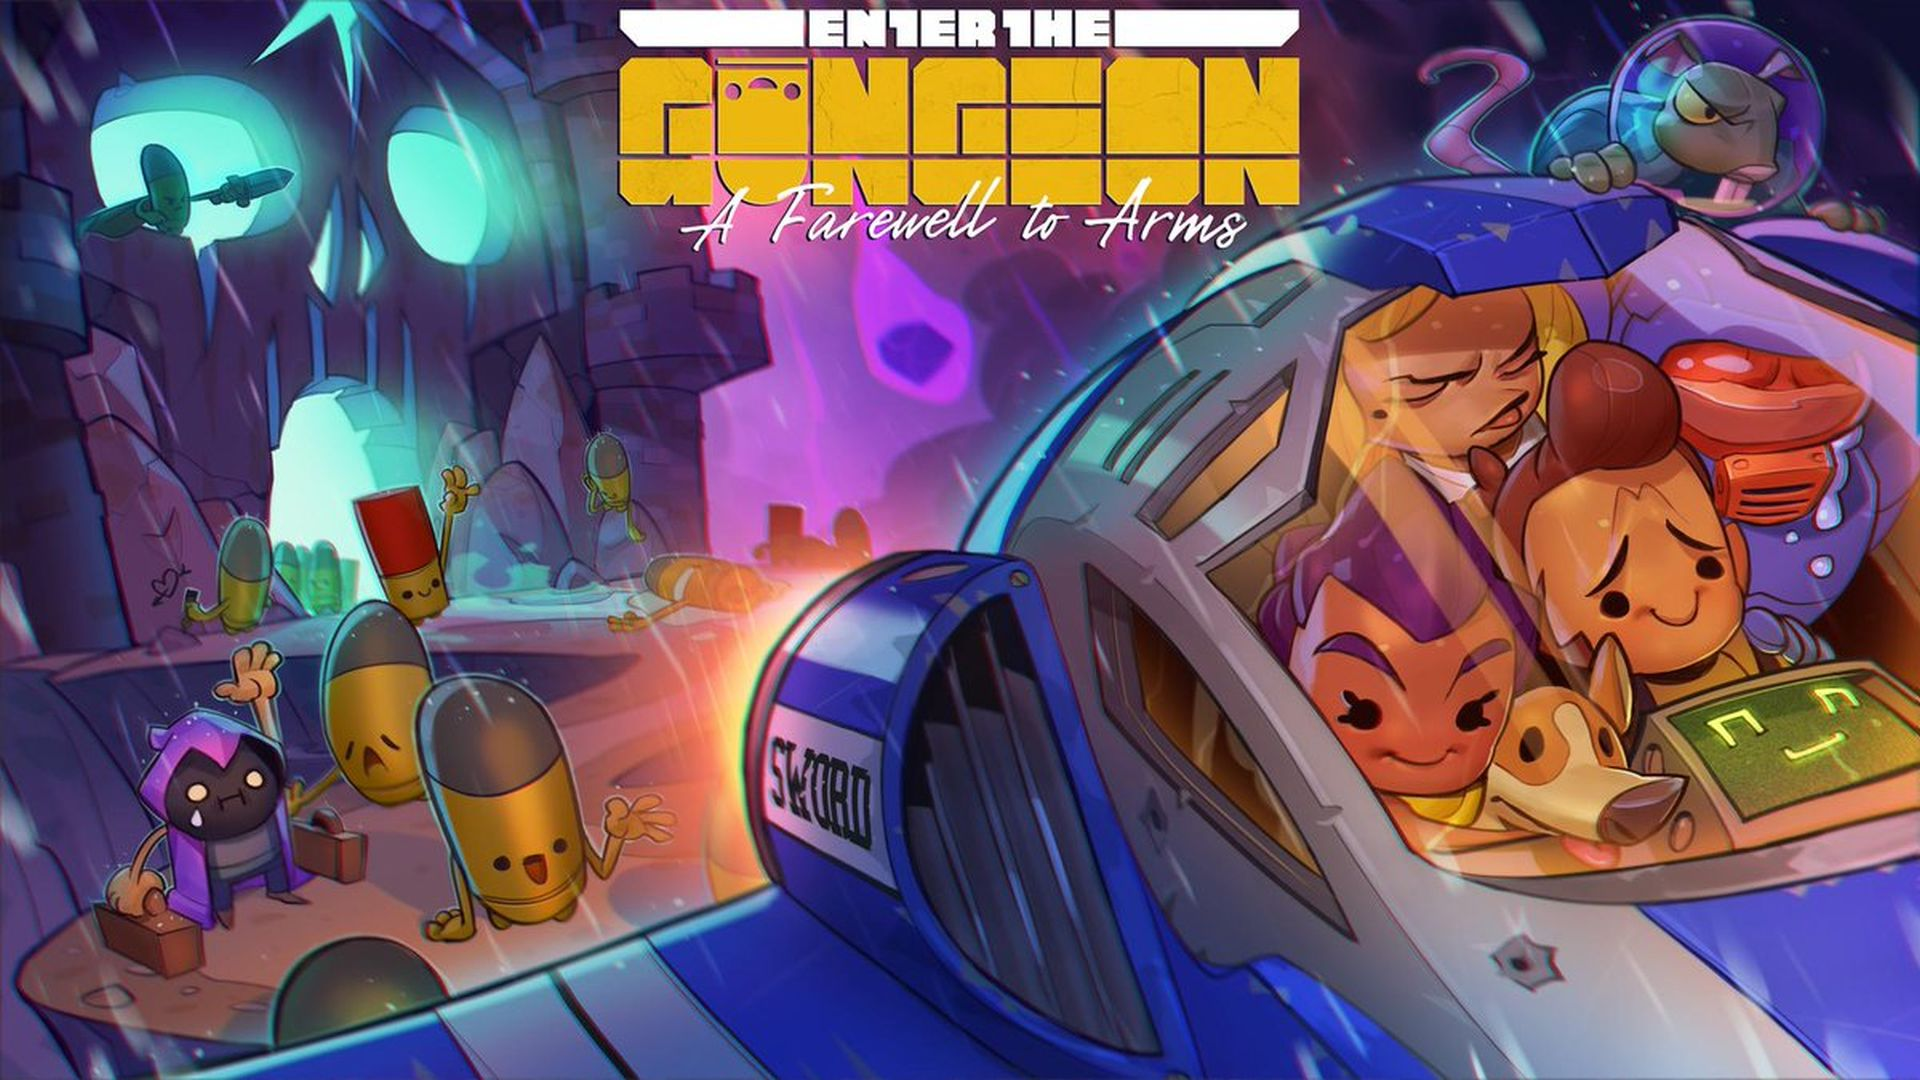 Enter The Gungeon - A Farewell to Arms